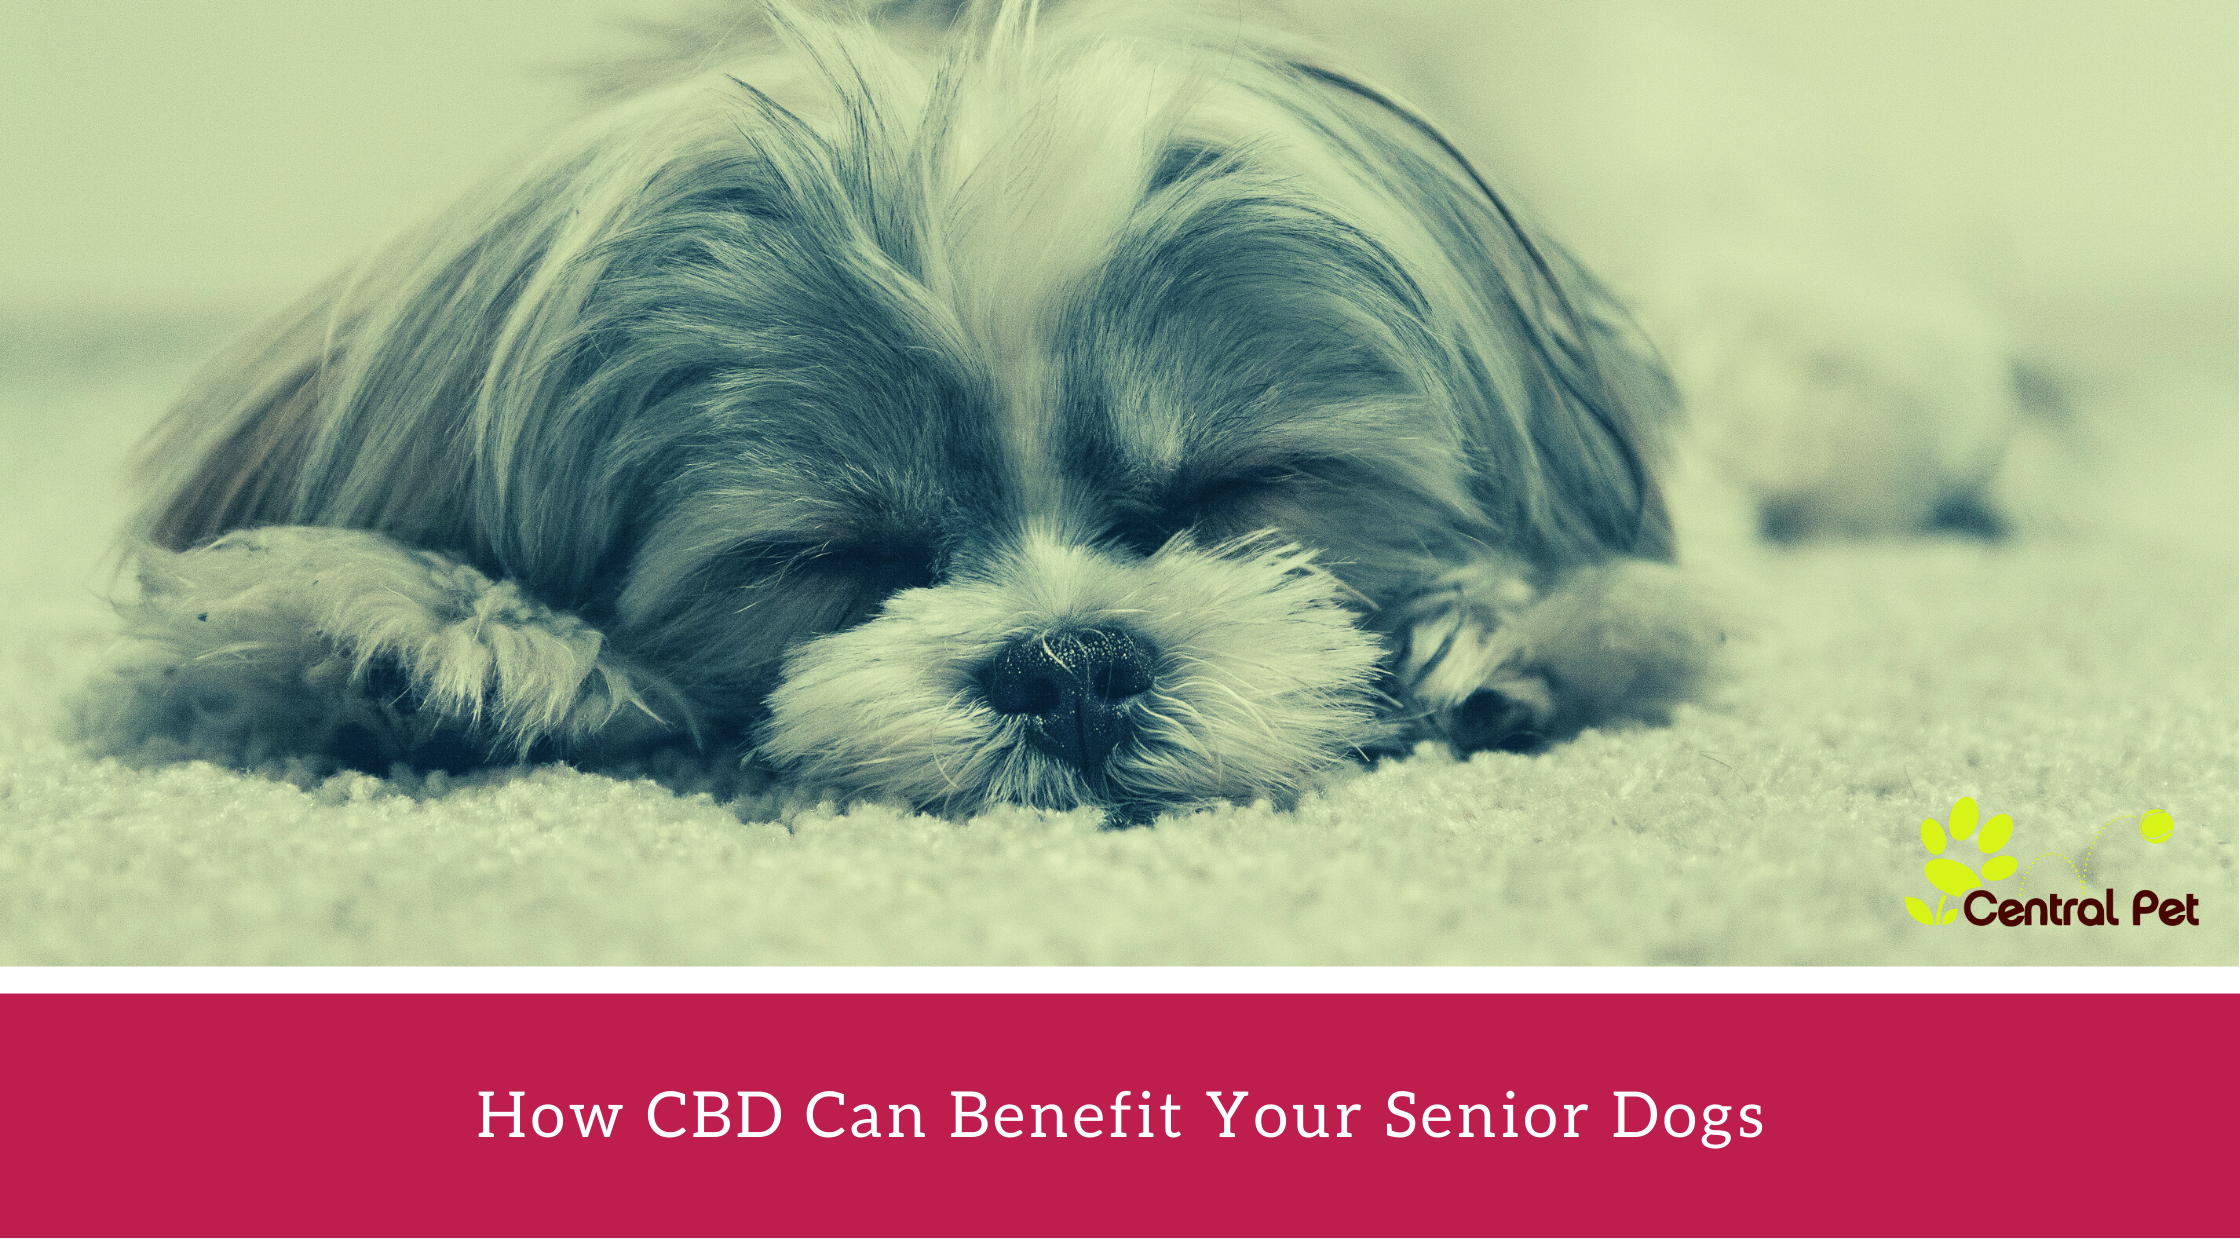 The Benefits of CBD for Senior Dogs